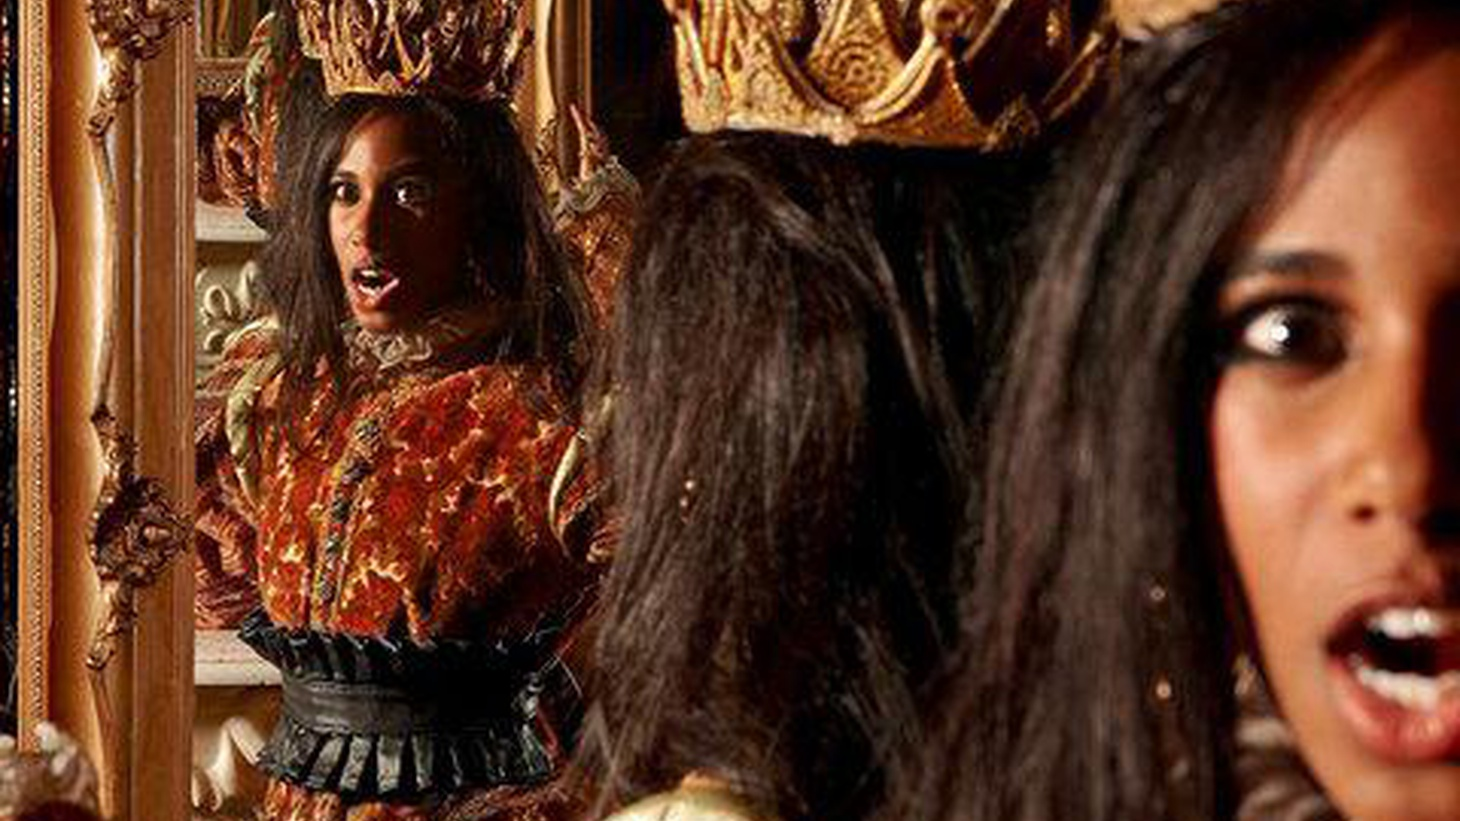 The new album of Brooklyn-based singer Santigold has been at the top of KCRW's airplay charts for weeks...